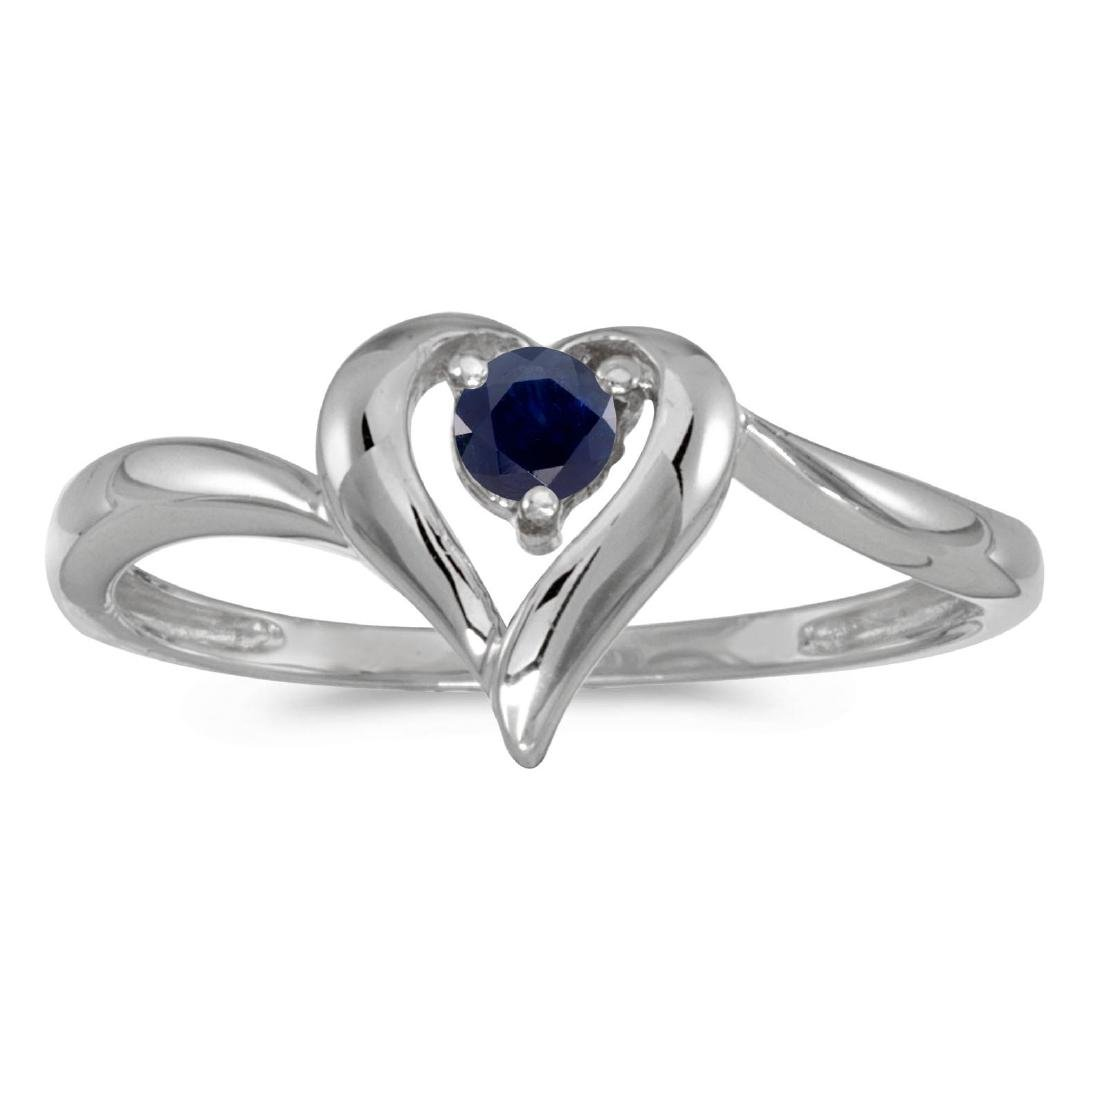 Certified 14k White Gold Round Sapphire Heart Ring 0.22